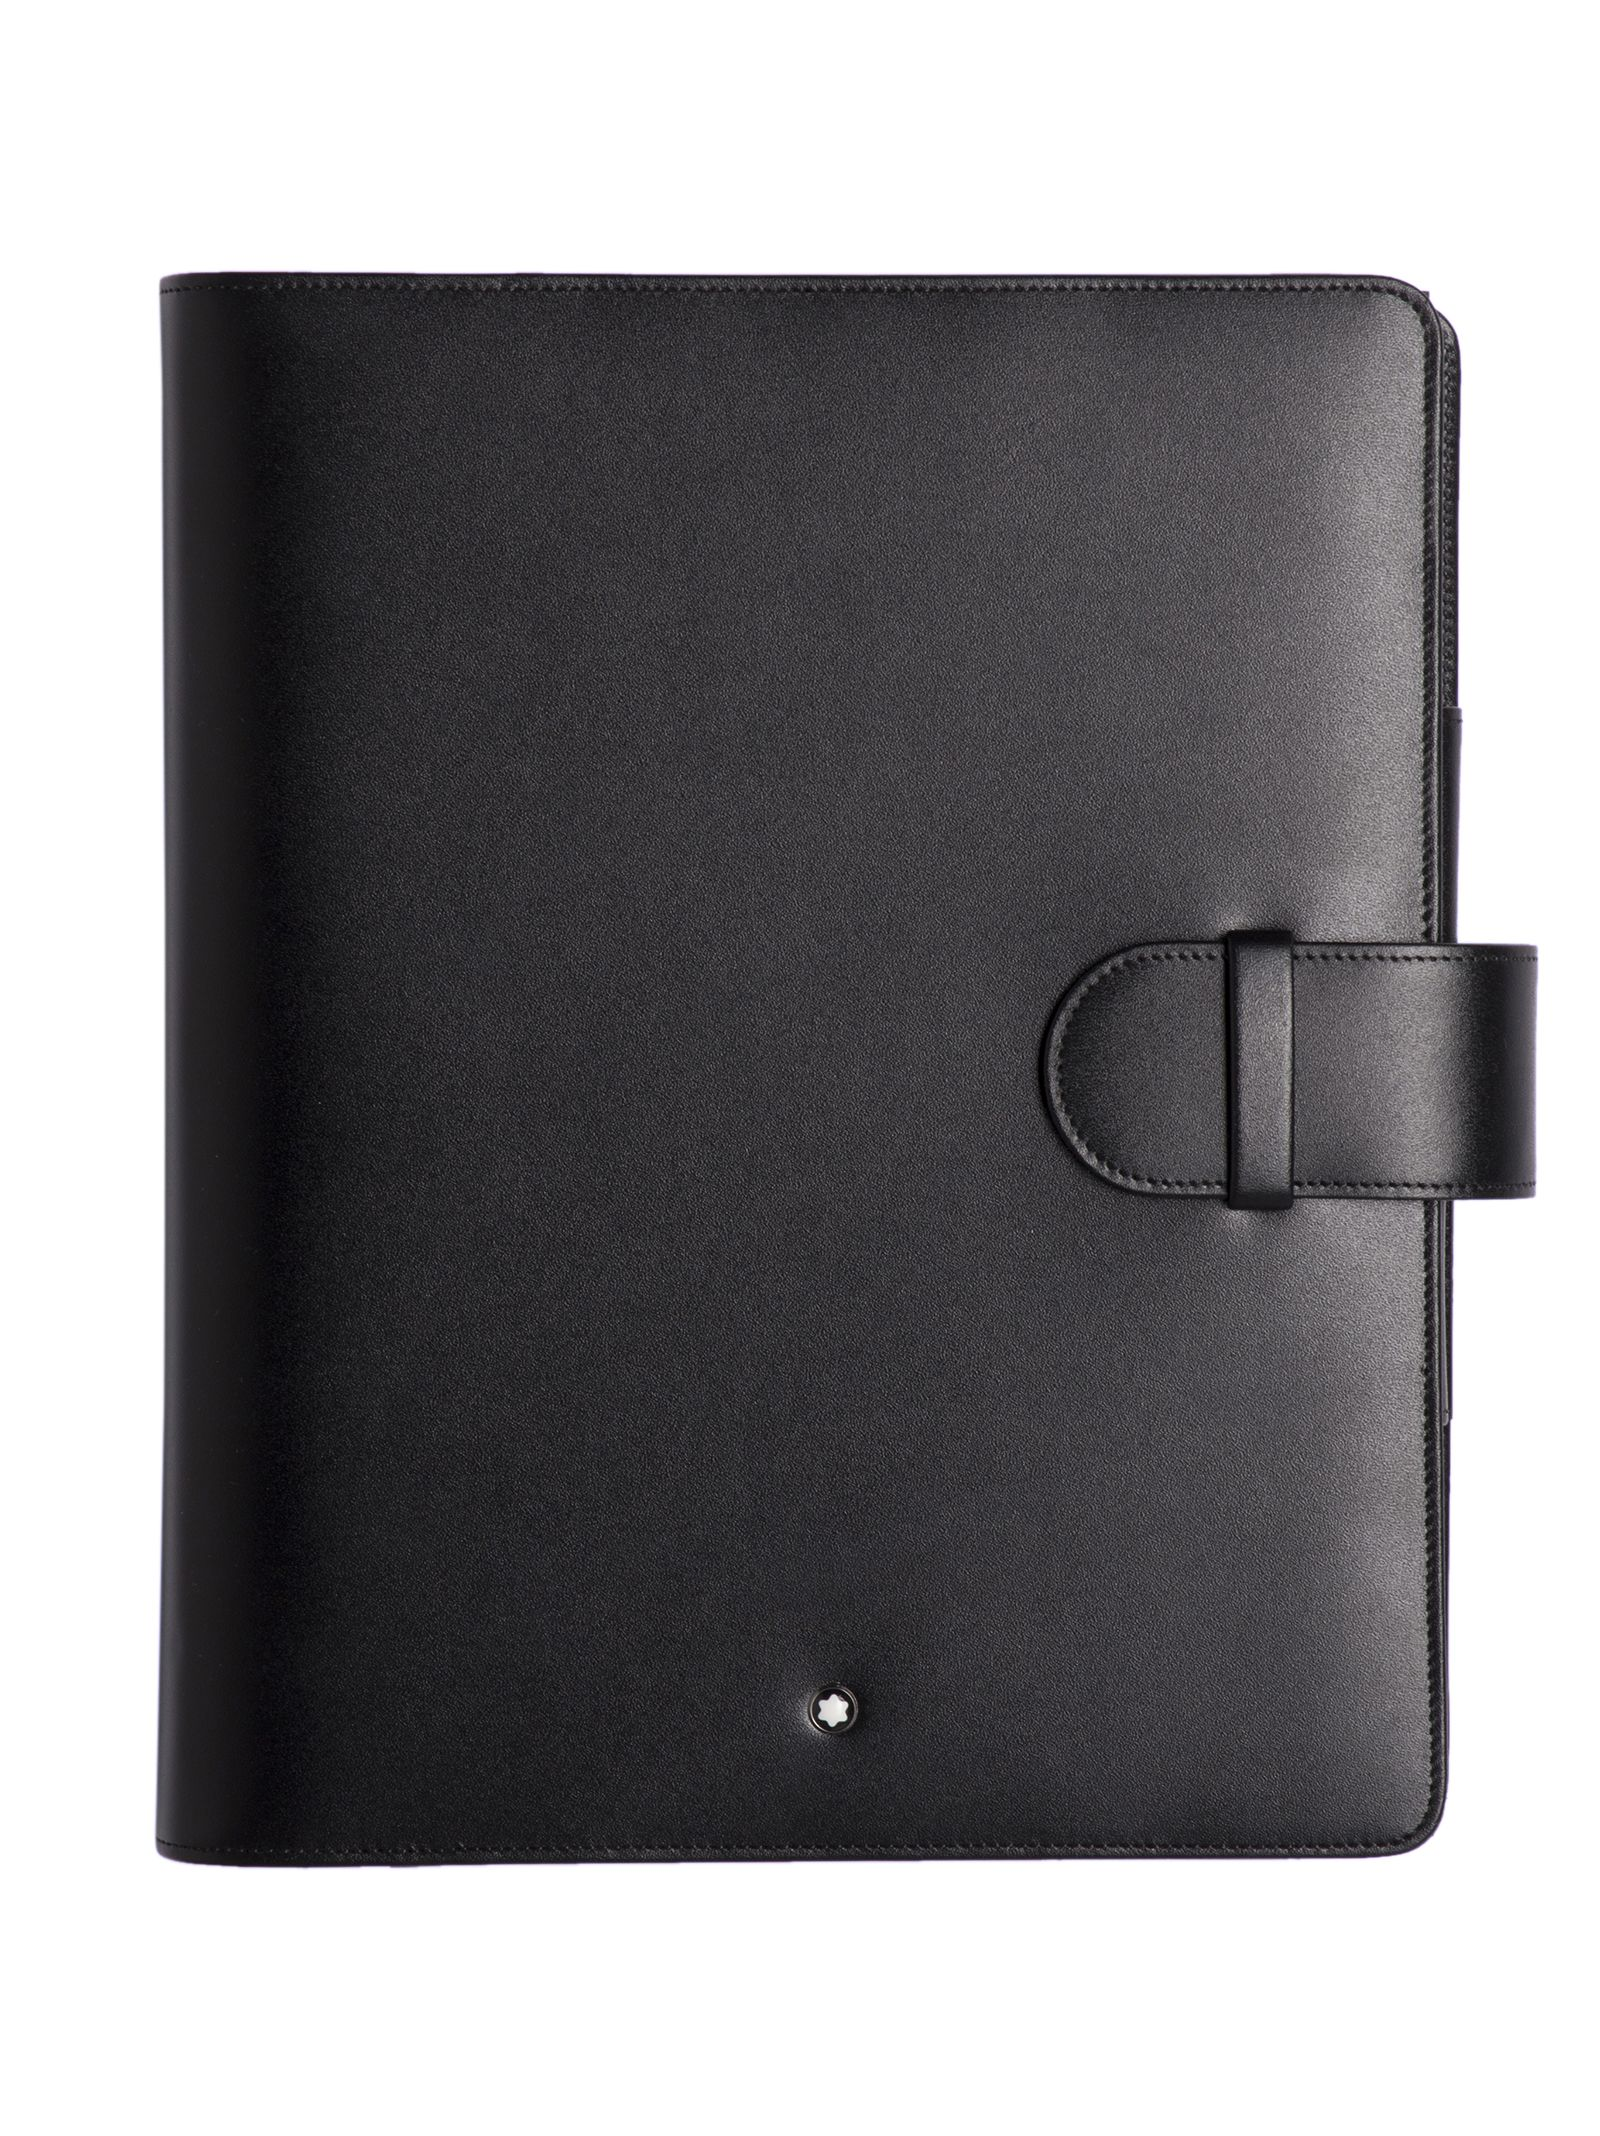 Document Holder Mont Blanc